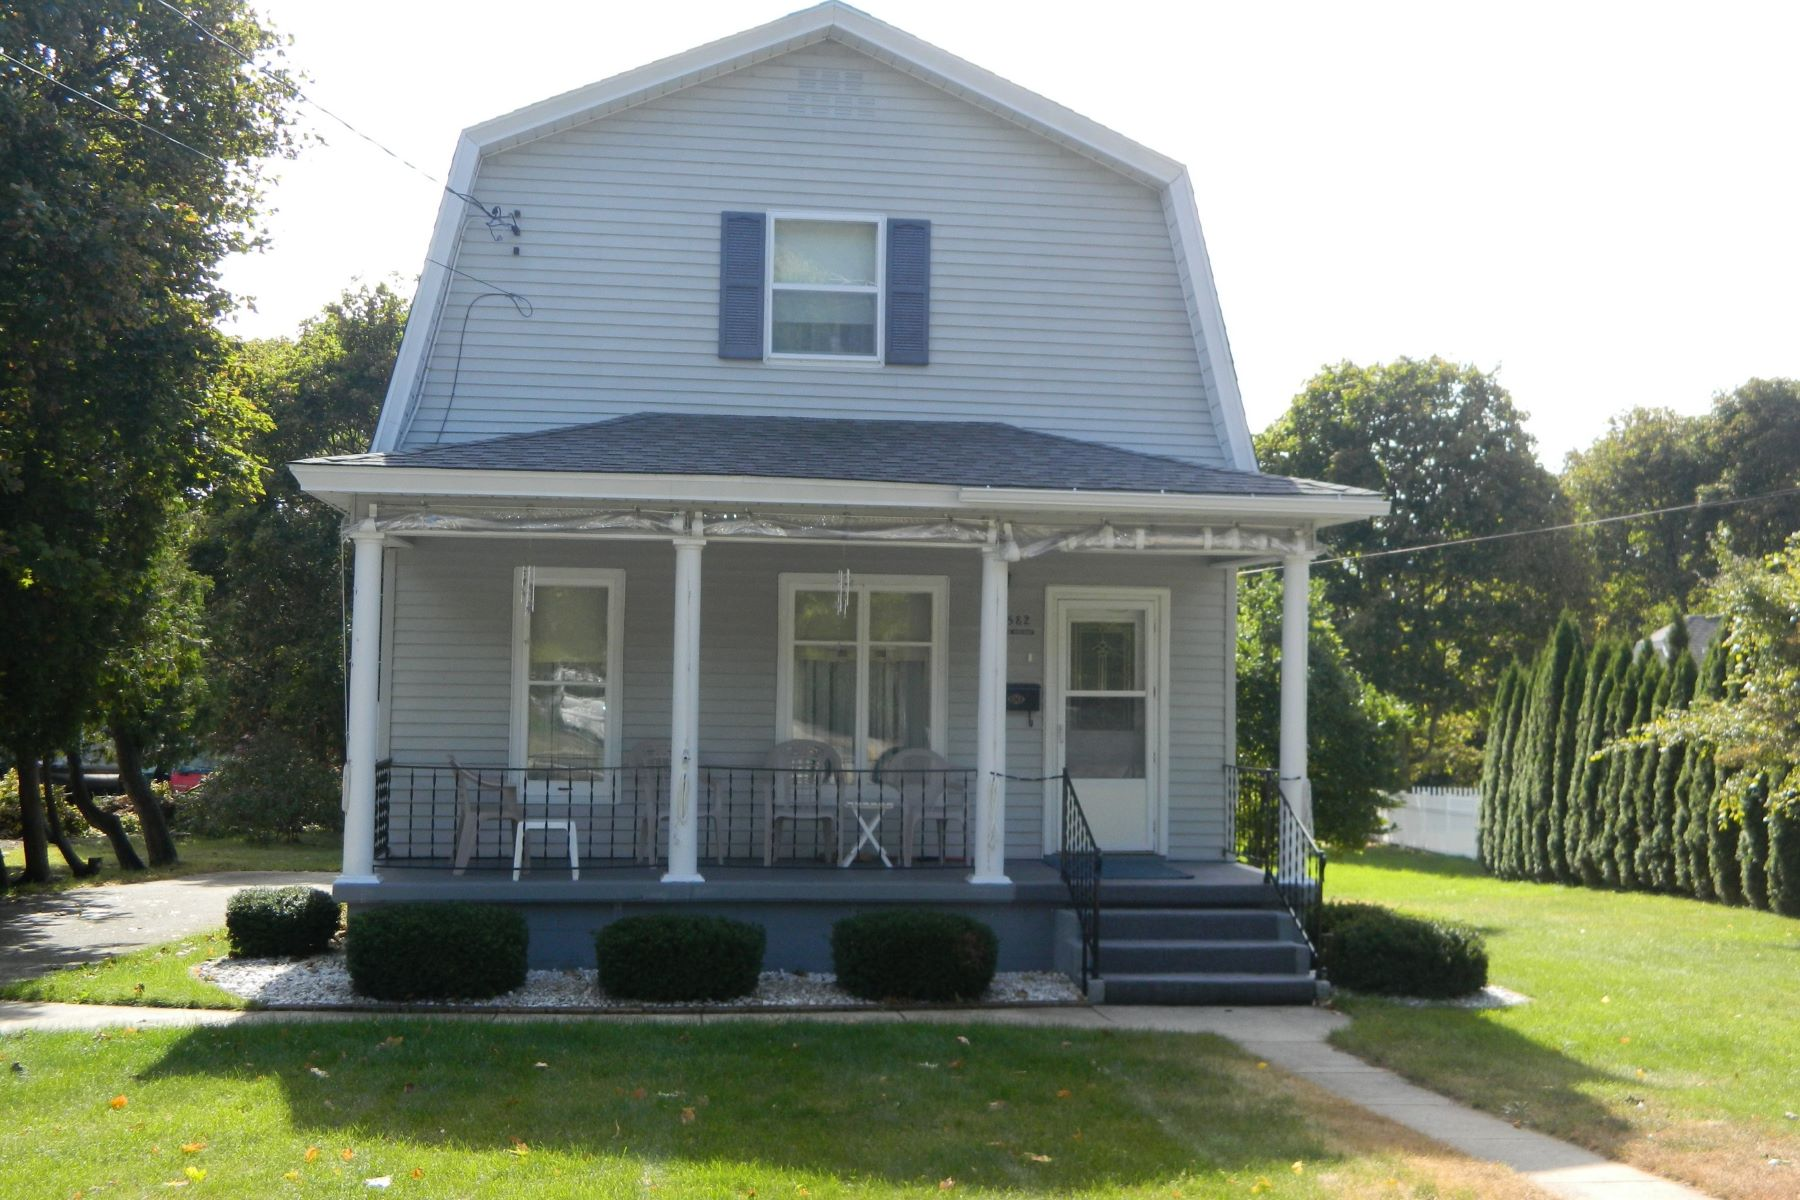 Single Family Home for Sale at 582 E. Main Street Harbor Springs, Michigan, 49740 United States